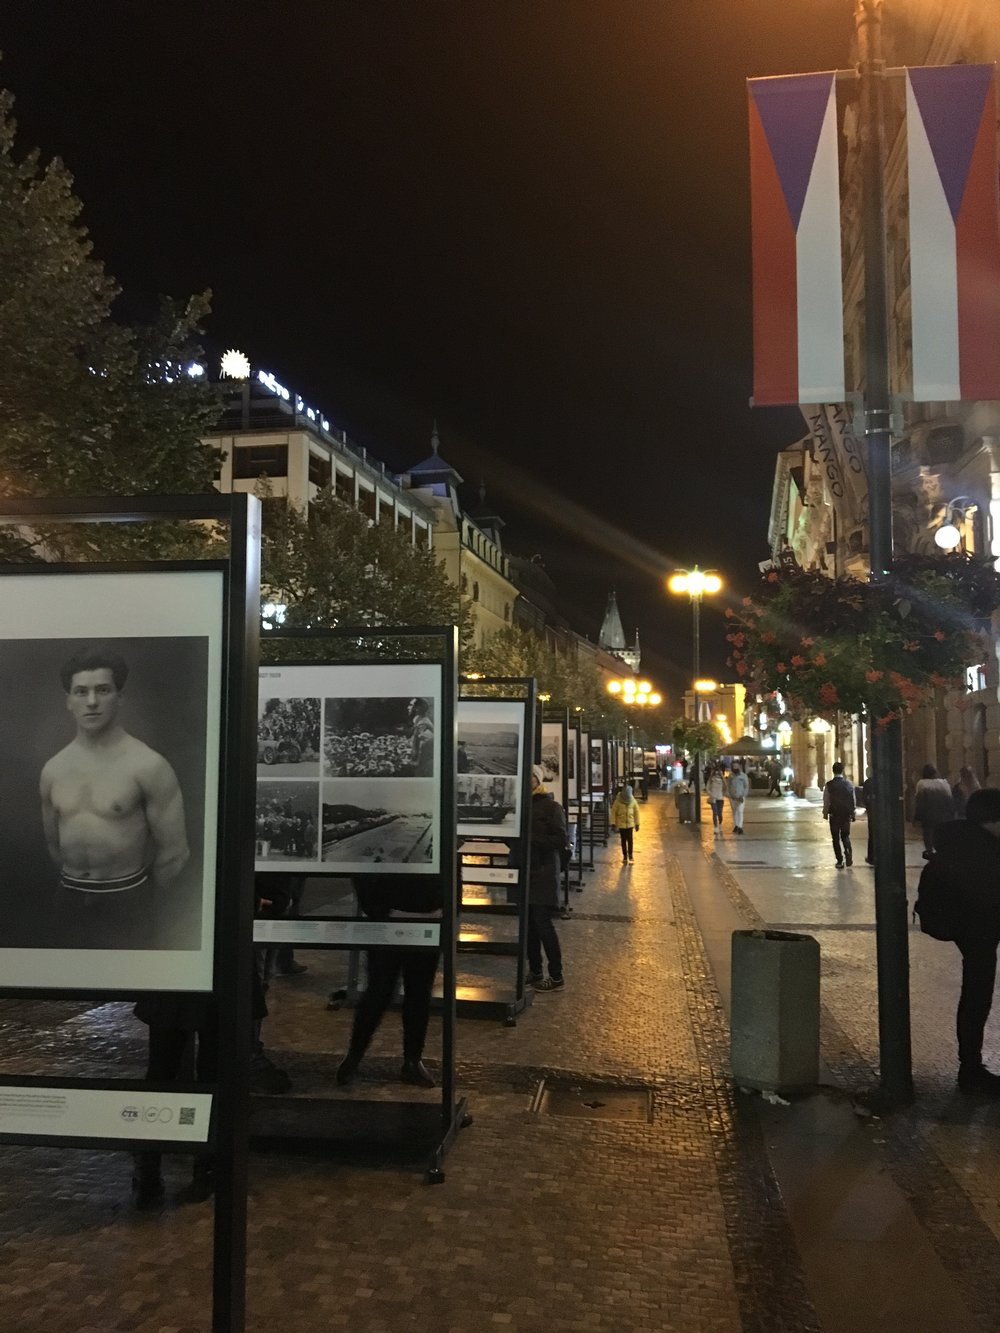 A life-sized photo exhibit showcasing 100 years of Czechoslovak history.